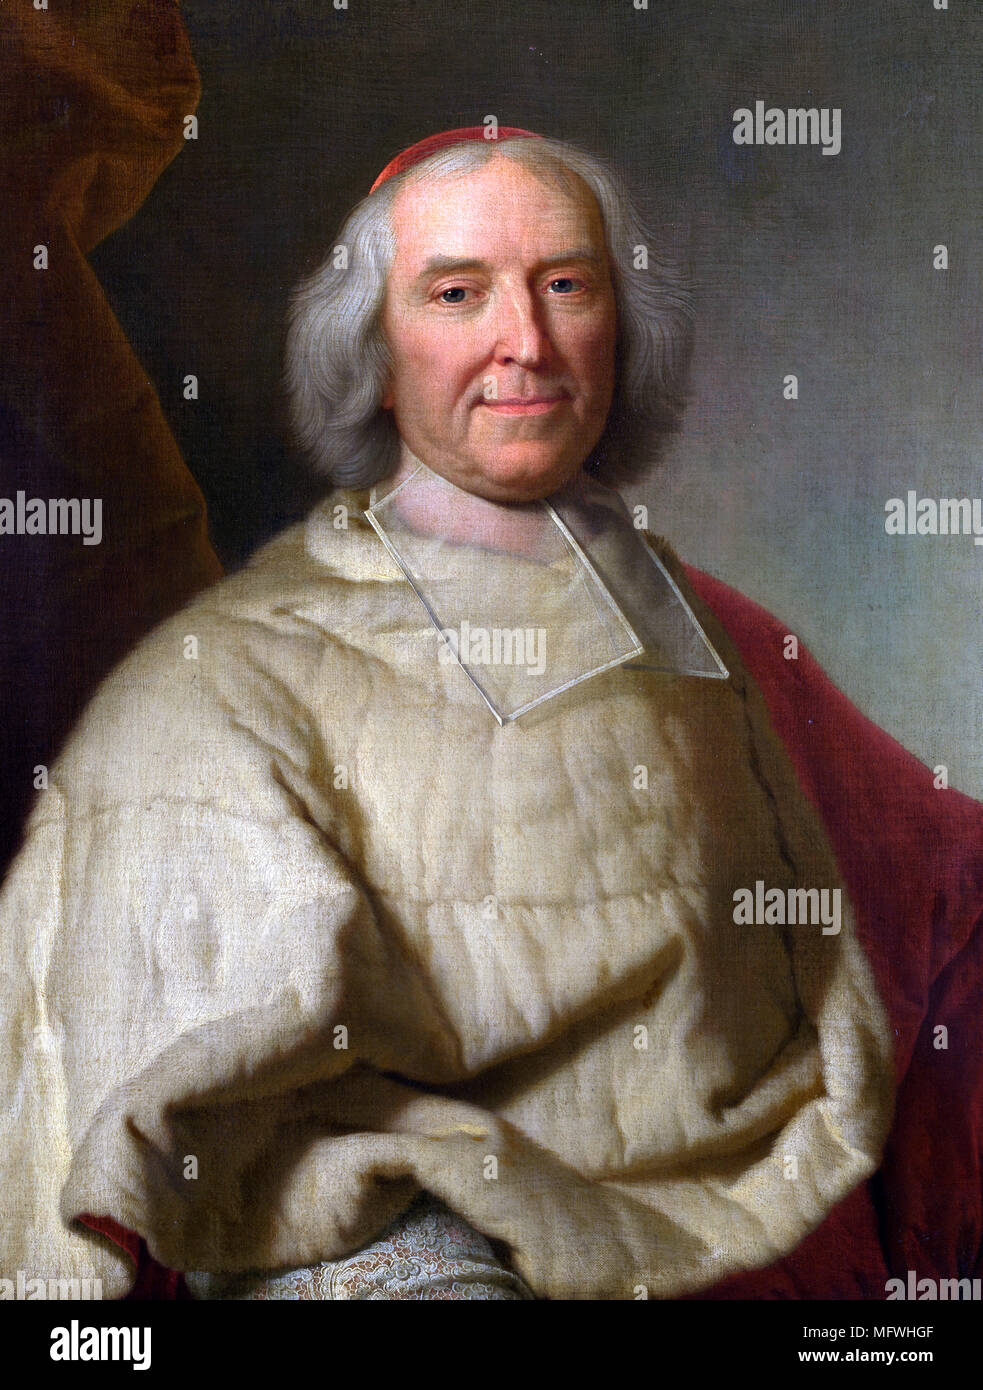 André-Hercule de Fleury André-Hercule de Fleury, Bishop of Fréjus, Archbishop of Aix (1653 – 1743) French cardinal Portrait by Hyacinthe Rigaud - Stock Image